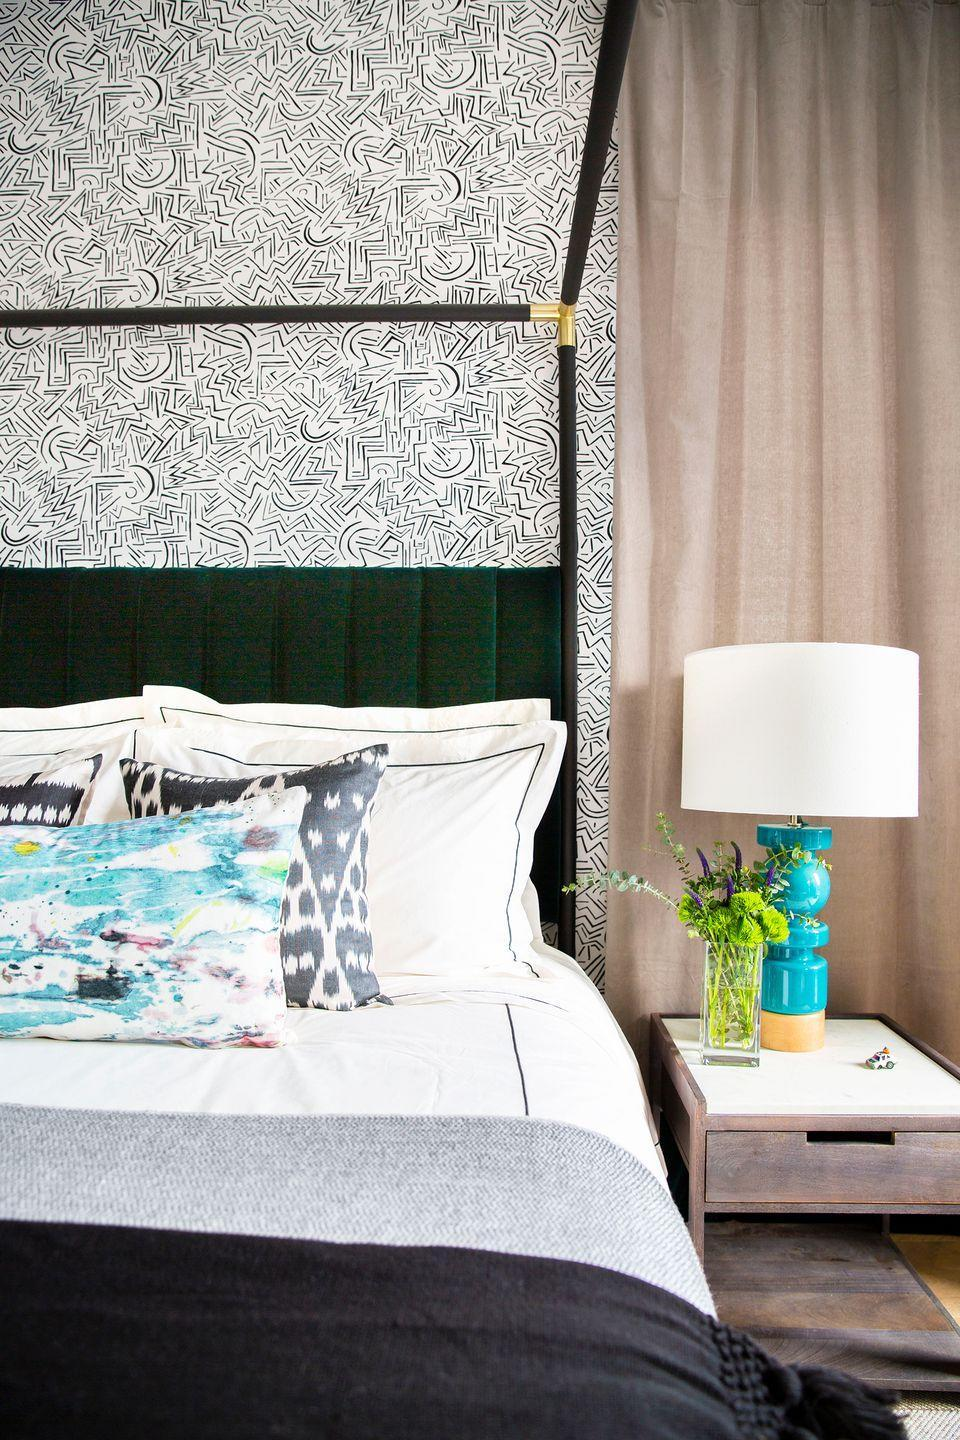 """<p>Though <a href=""""http://www.petilau.com/"""" rel=""""nofollow noopener"""" target=""""_blank"""" data-ylk=""""slk:Peti Lau"""" class=""""link rapid-noclick-resp"""">Peti Lau</a> designed this bedroom for a really cool grownup (<a href=""""https://www.housebeautiful.com/design-inspiration/house-tours/a30696949/peti-lau-chainsmokerss-drew-taggart-home/"""" rel=""""nofollow noopener"""" target=""""_blank"""" data-ylk=""""slk:The Chainsmokers's Drew Taggart"""" class=""""link rapid-noclick-resp"""">The Chainsmokers's Drew Taggart</a>) and not an actual teenager, the graphic wallpaper and pops of bright blue are perfect for a mature teen's room. Mixed with the more polished elements, like the four-post bed frame and deep green velvet headboard, it's the perfect balance of fun and seriousness. </p>"""